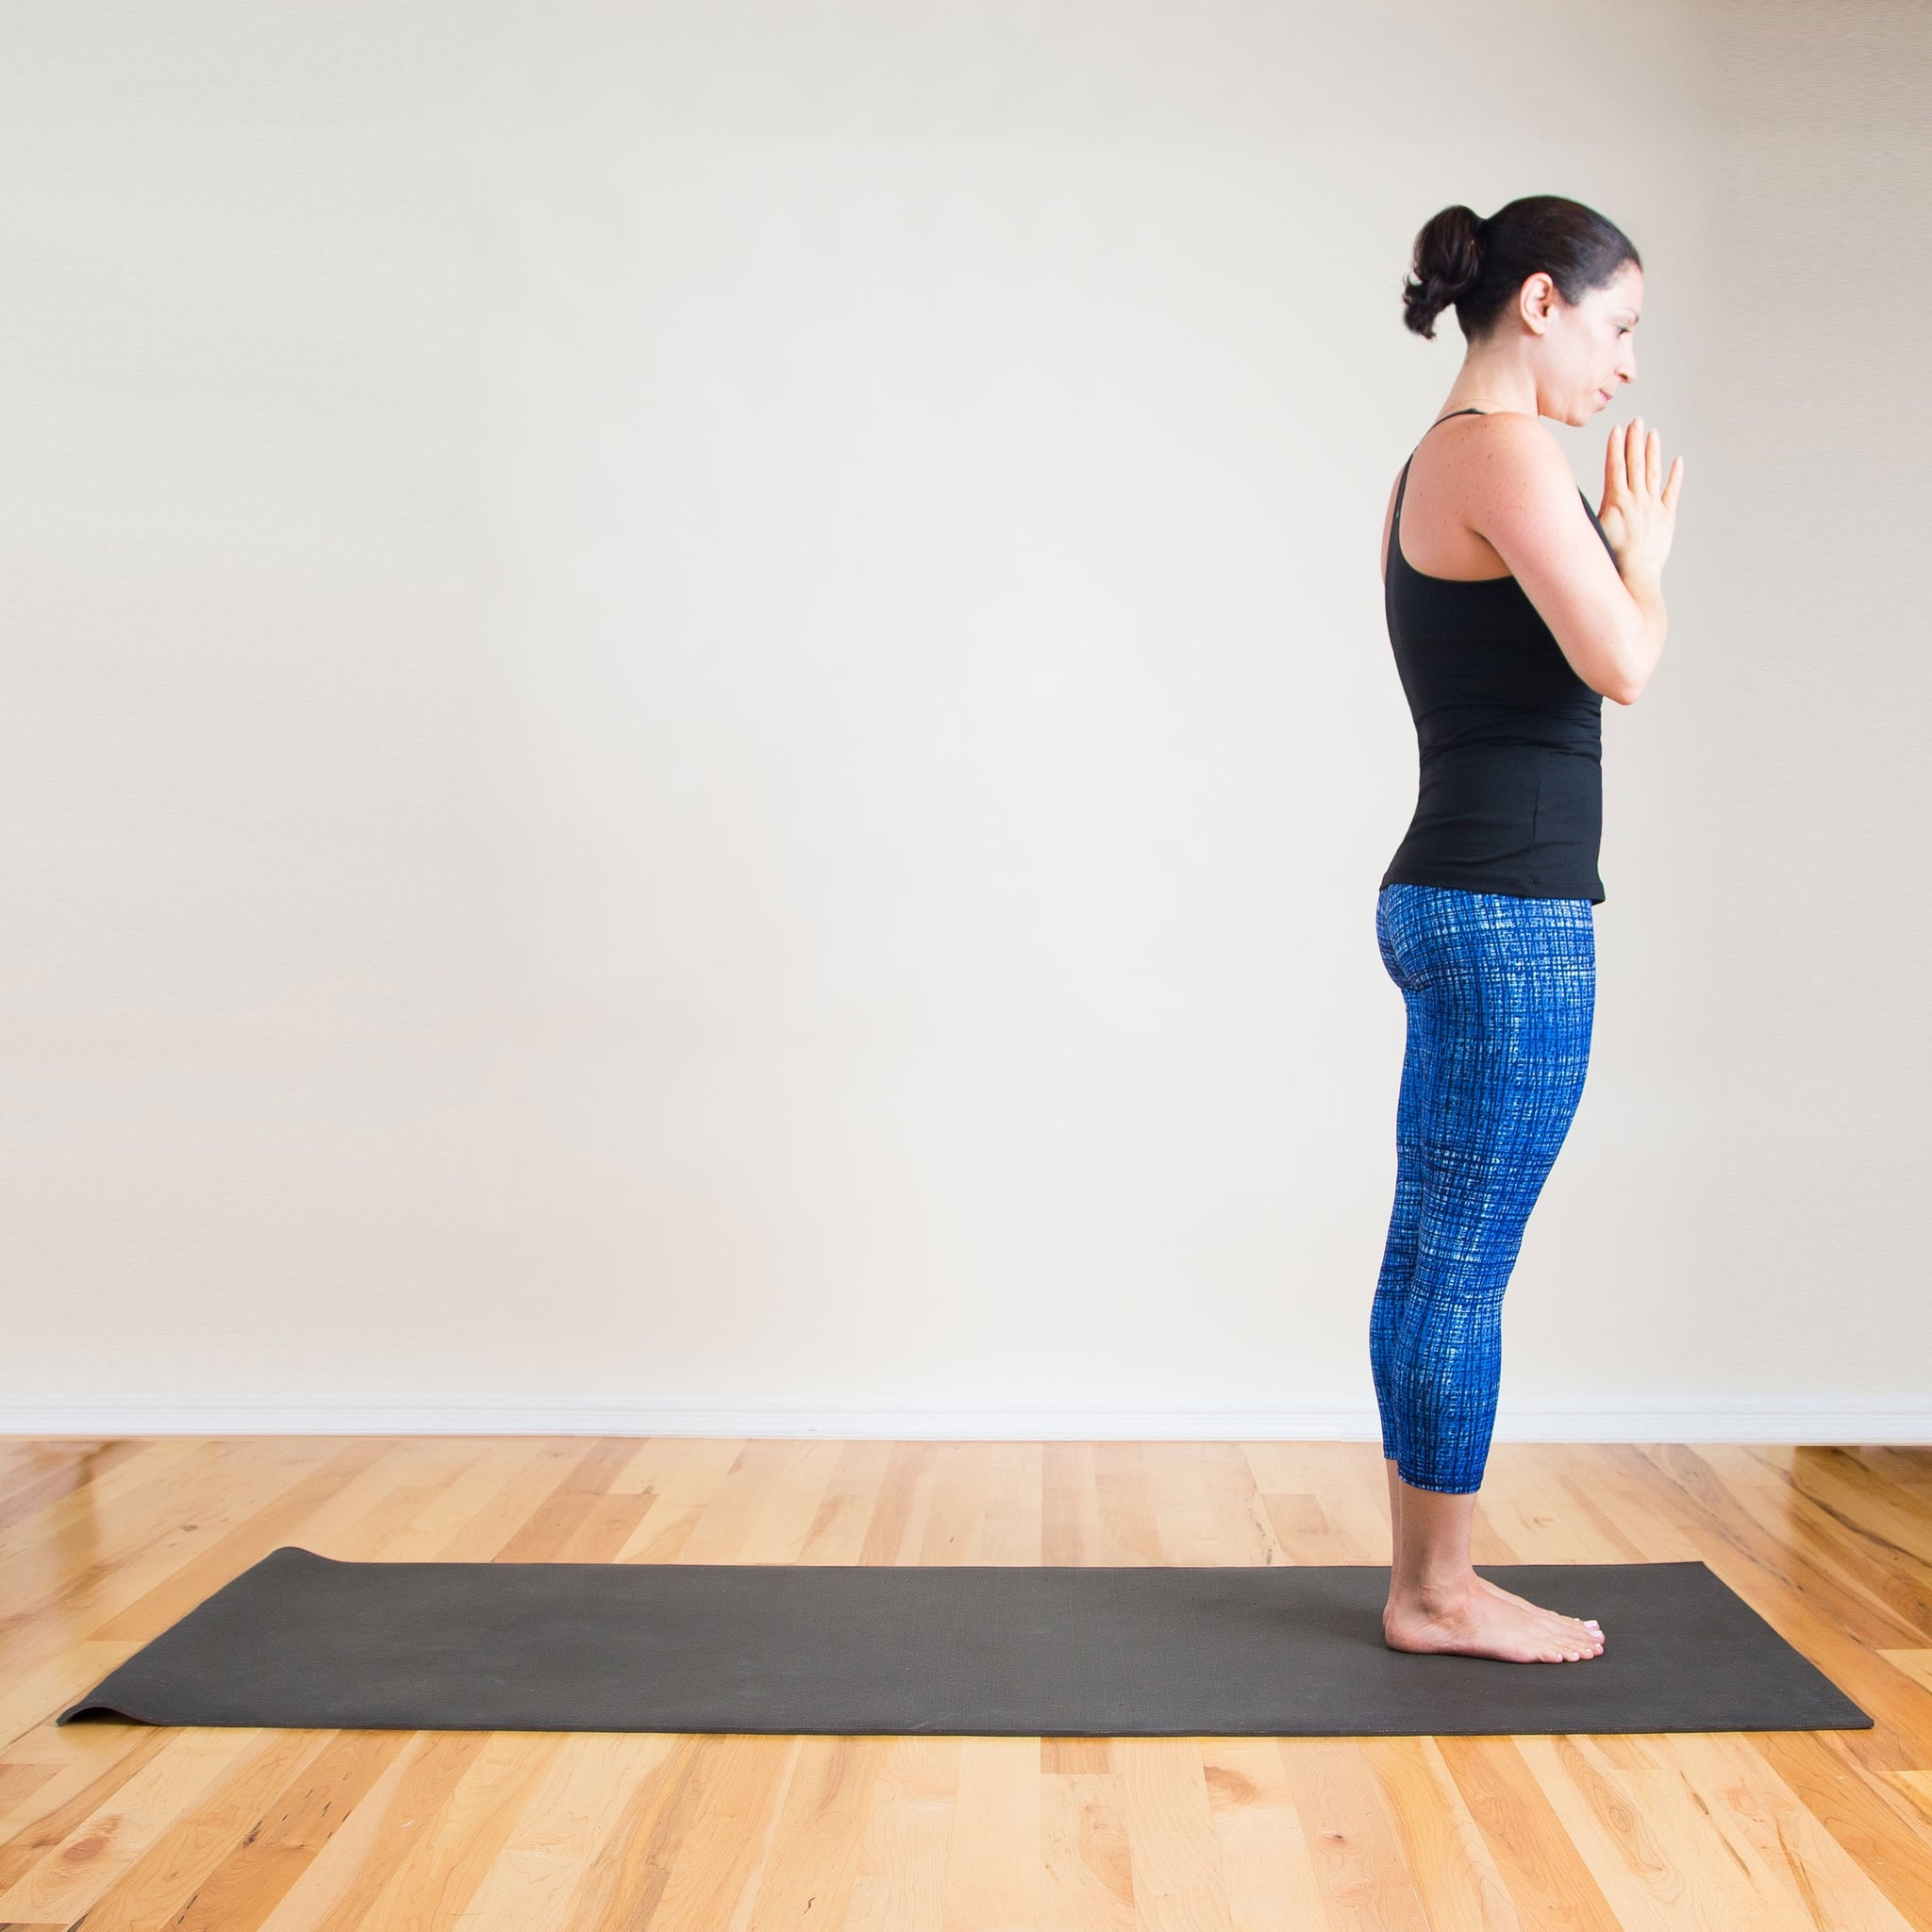 Mountain Pose  Help Relieve Anxiety With These Calming Yoga Poses